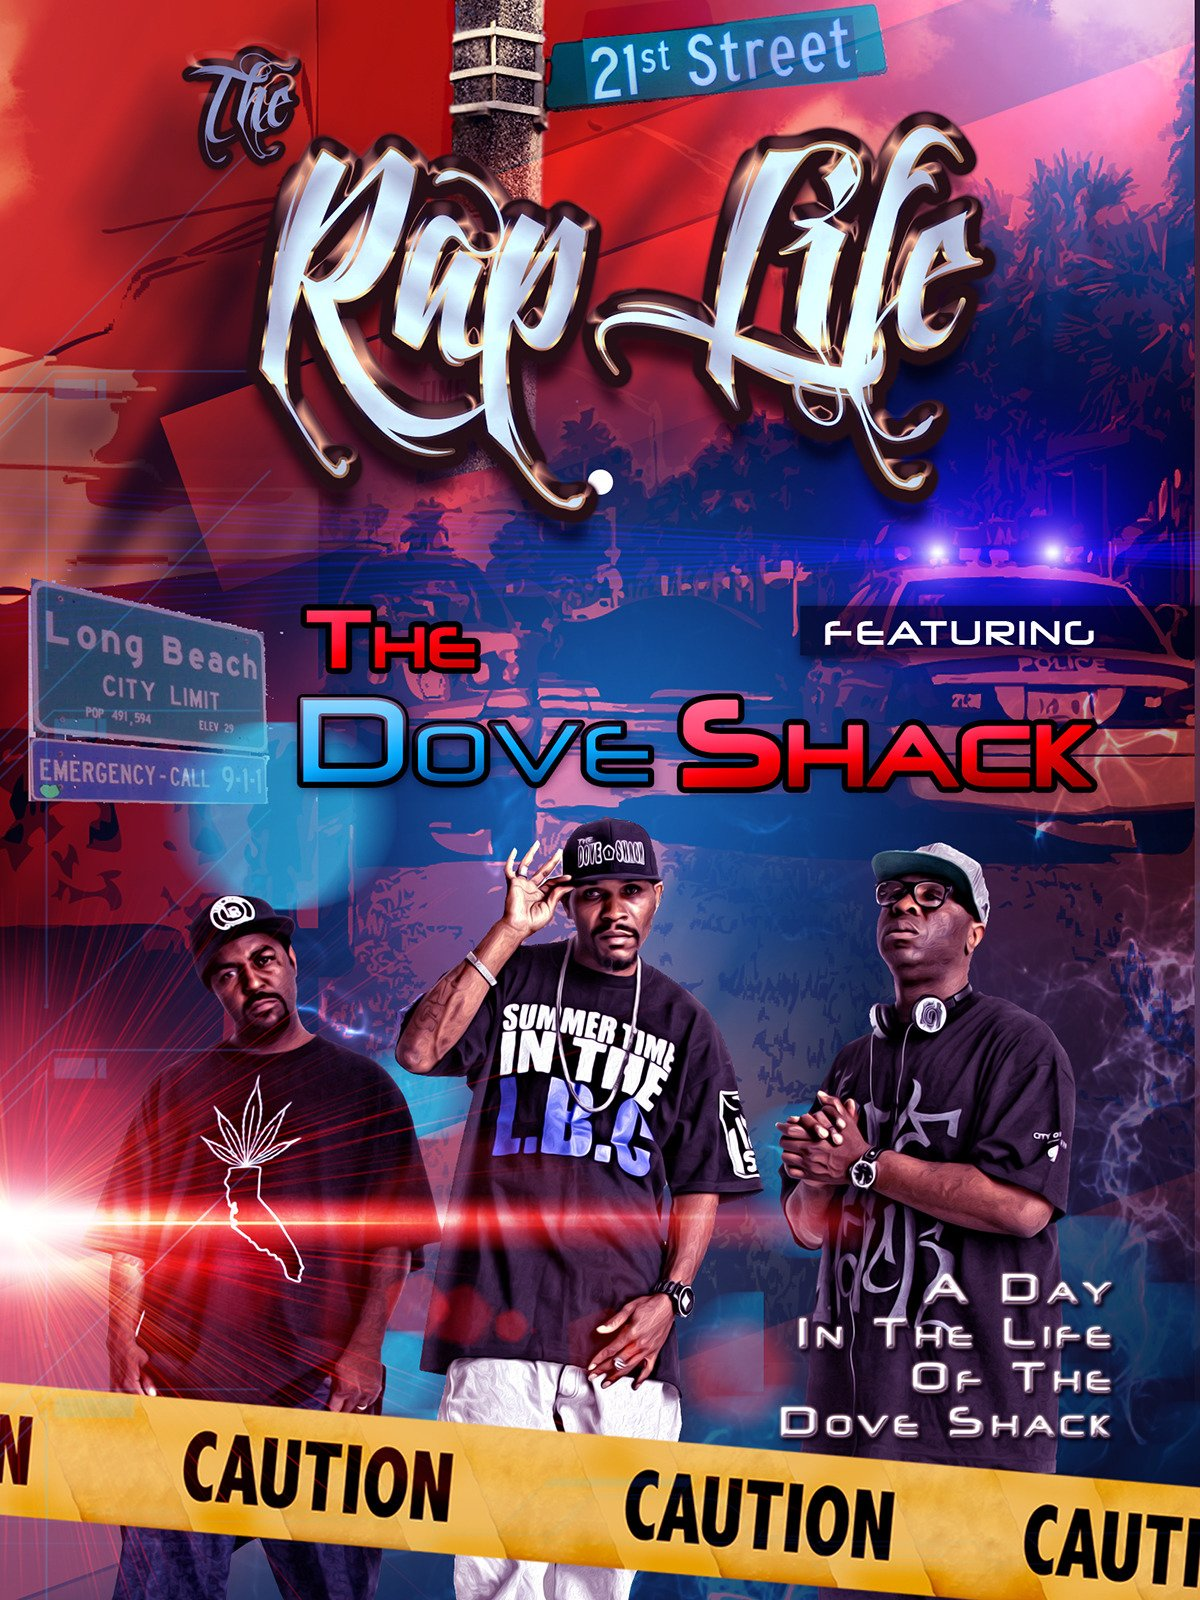 The Rap Life Featuring The Dove Shack